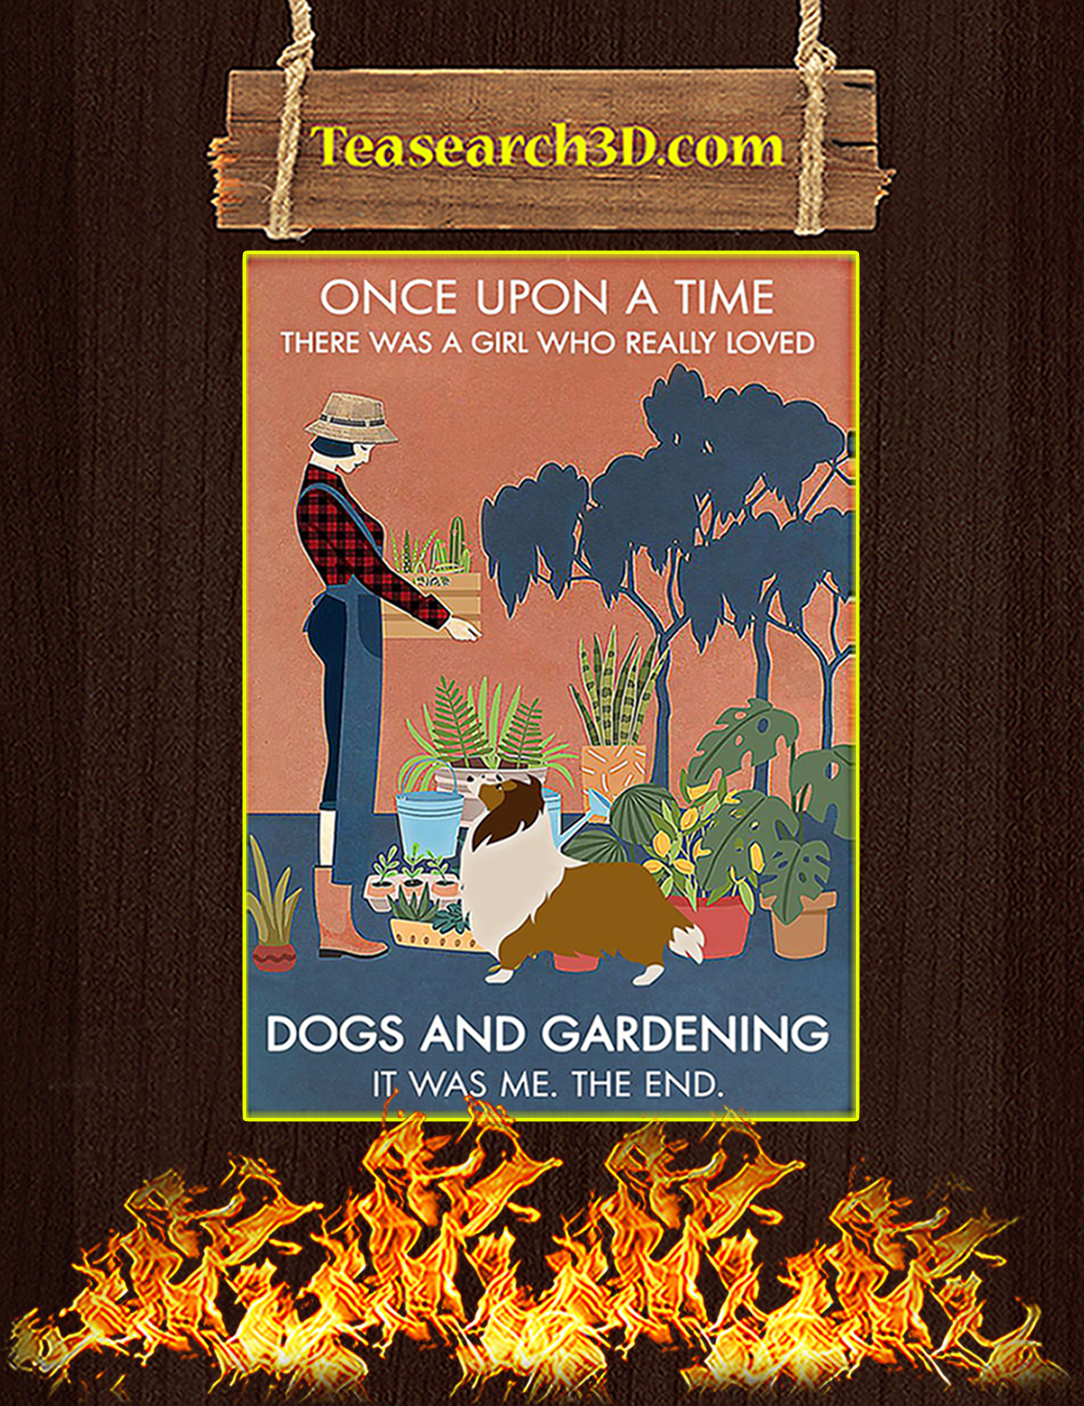 Shetland Sheepdog One upon a time there was a girl loved dogs and gardening poster A2